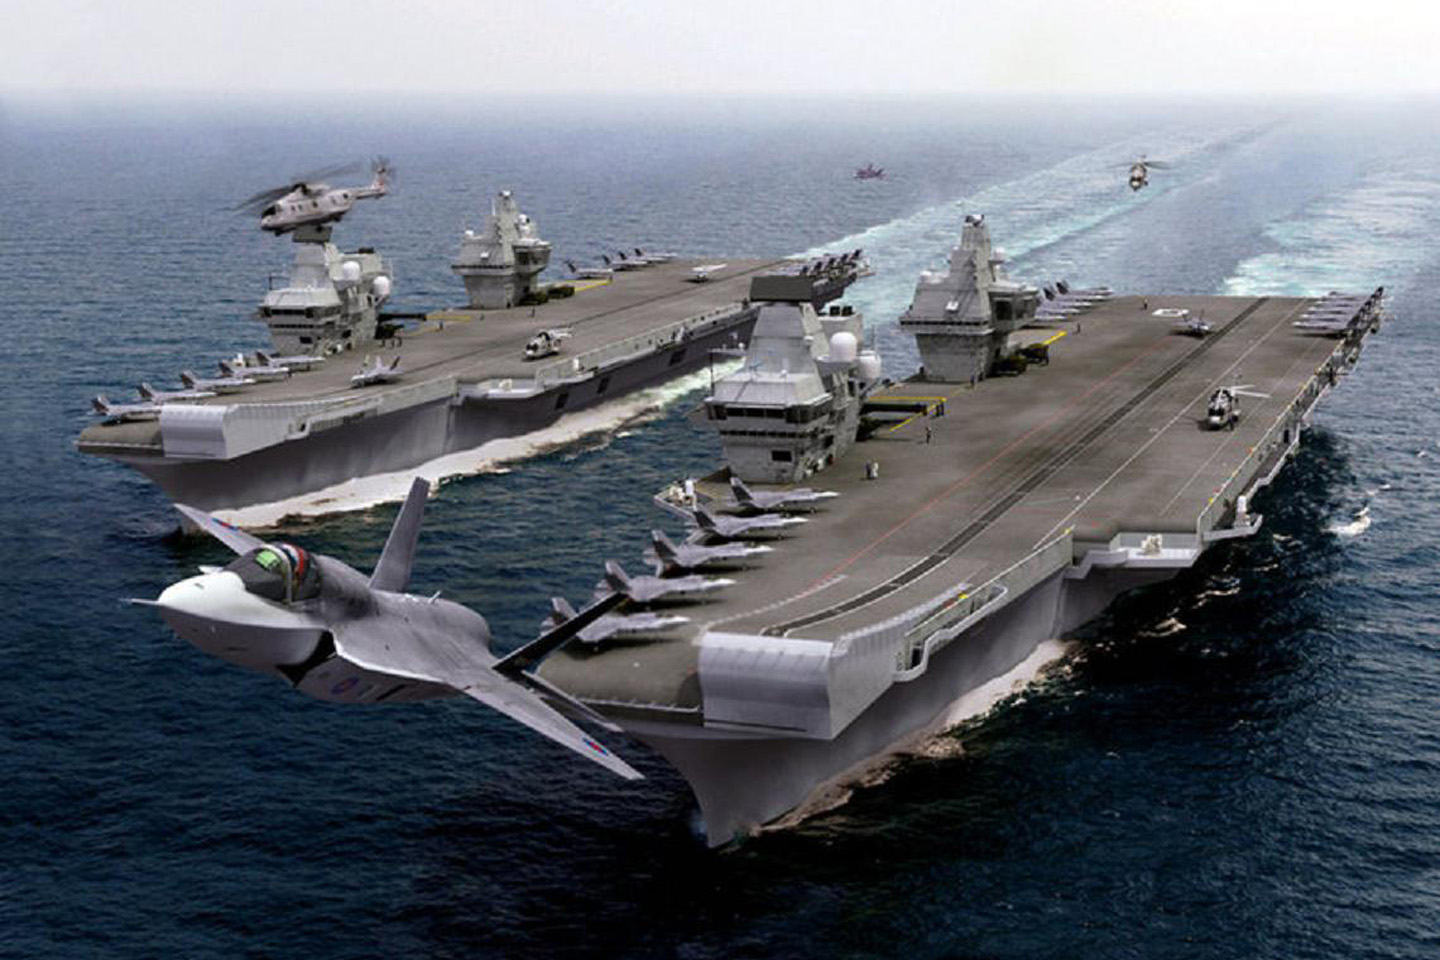 In SOS United States the HMS Queen Elizabeth aircraft carrier intercepts the SS Leviathan ocean liner.